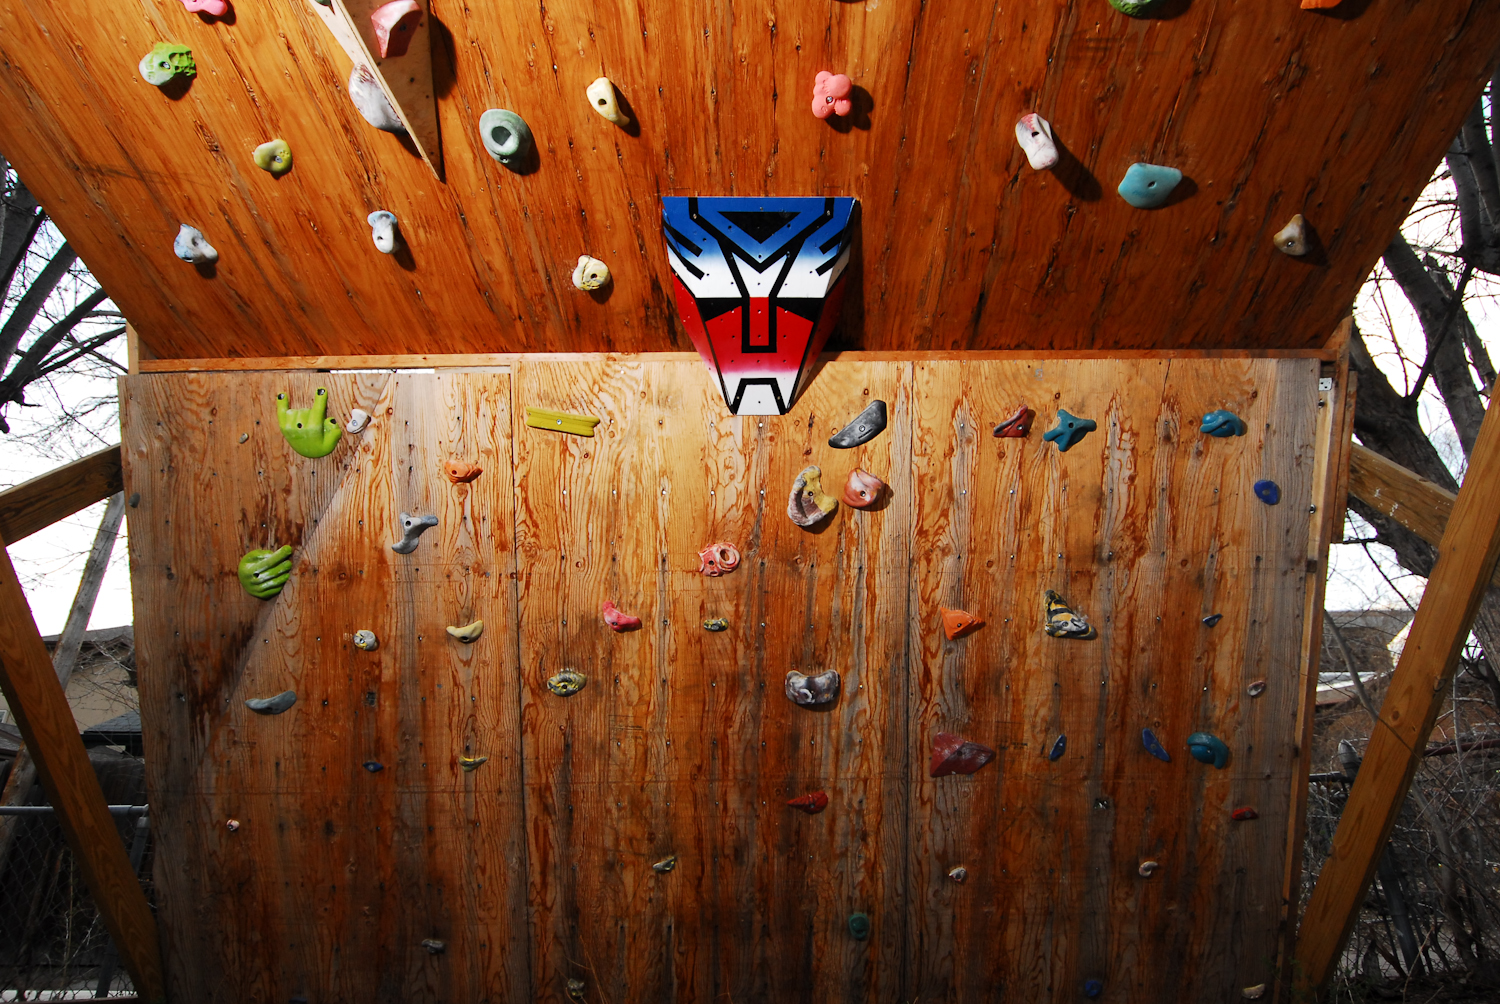 Close-up of the Climbing Wall Featuring Optimus Prime